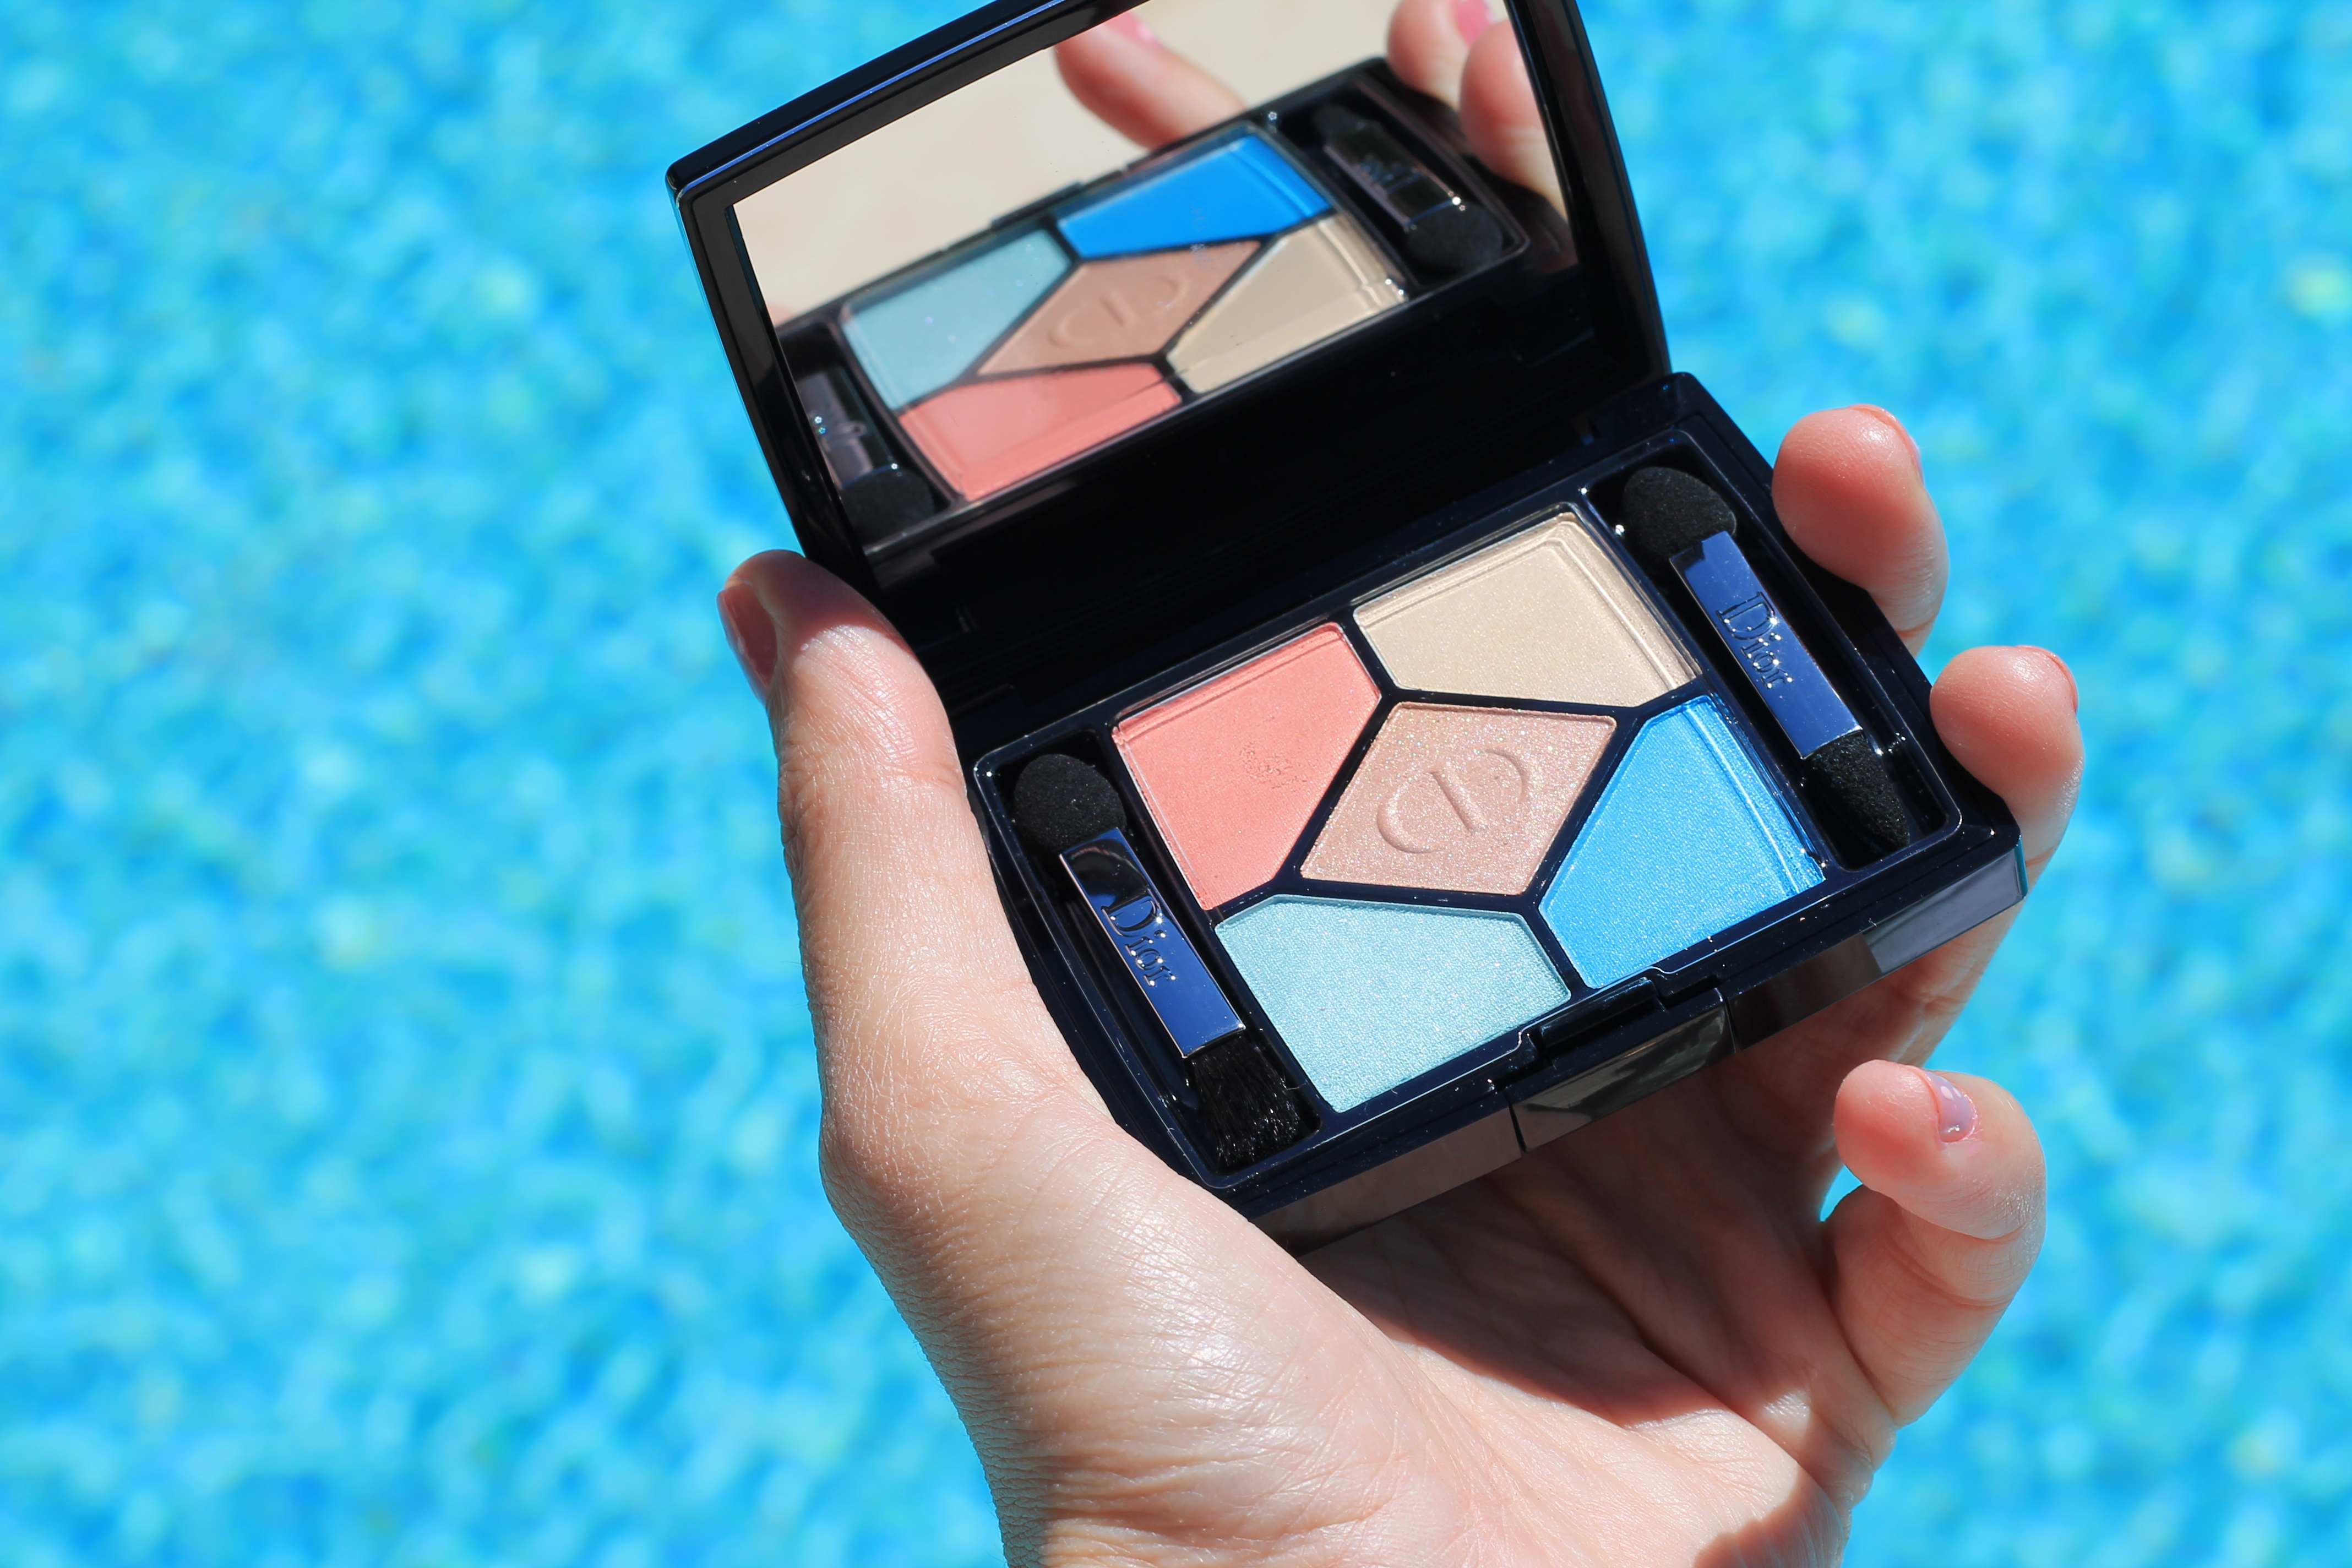 beauty trend summer 2016, theladycracy.it, elisa bellino, fashion blog, fashion bloggers, fashion blogger italia, fashion bloggers italiane, beauty blogger dior, dior makeup 2016, novità dior, profumi dior buoni, j adore dior eau de toilette nuovo, bain de mer palette dior, make up estate 2016, elisa bellino, web influencer italia, milky dots dior, Beauty trends summer 2016